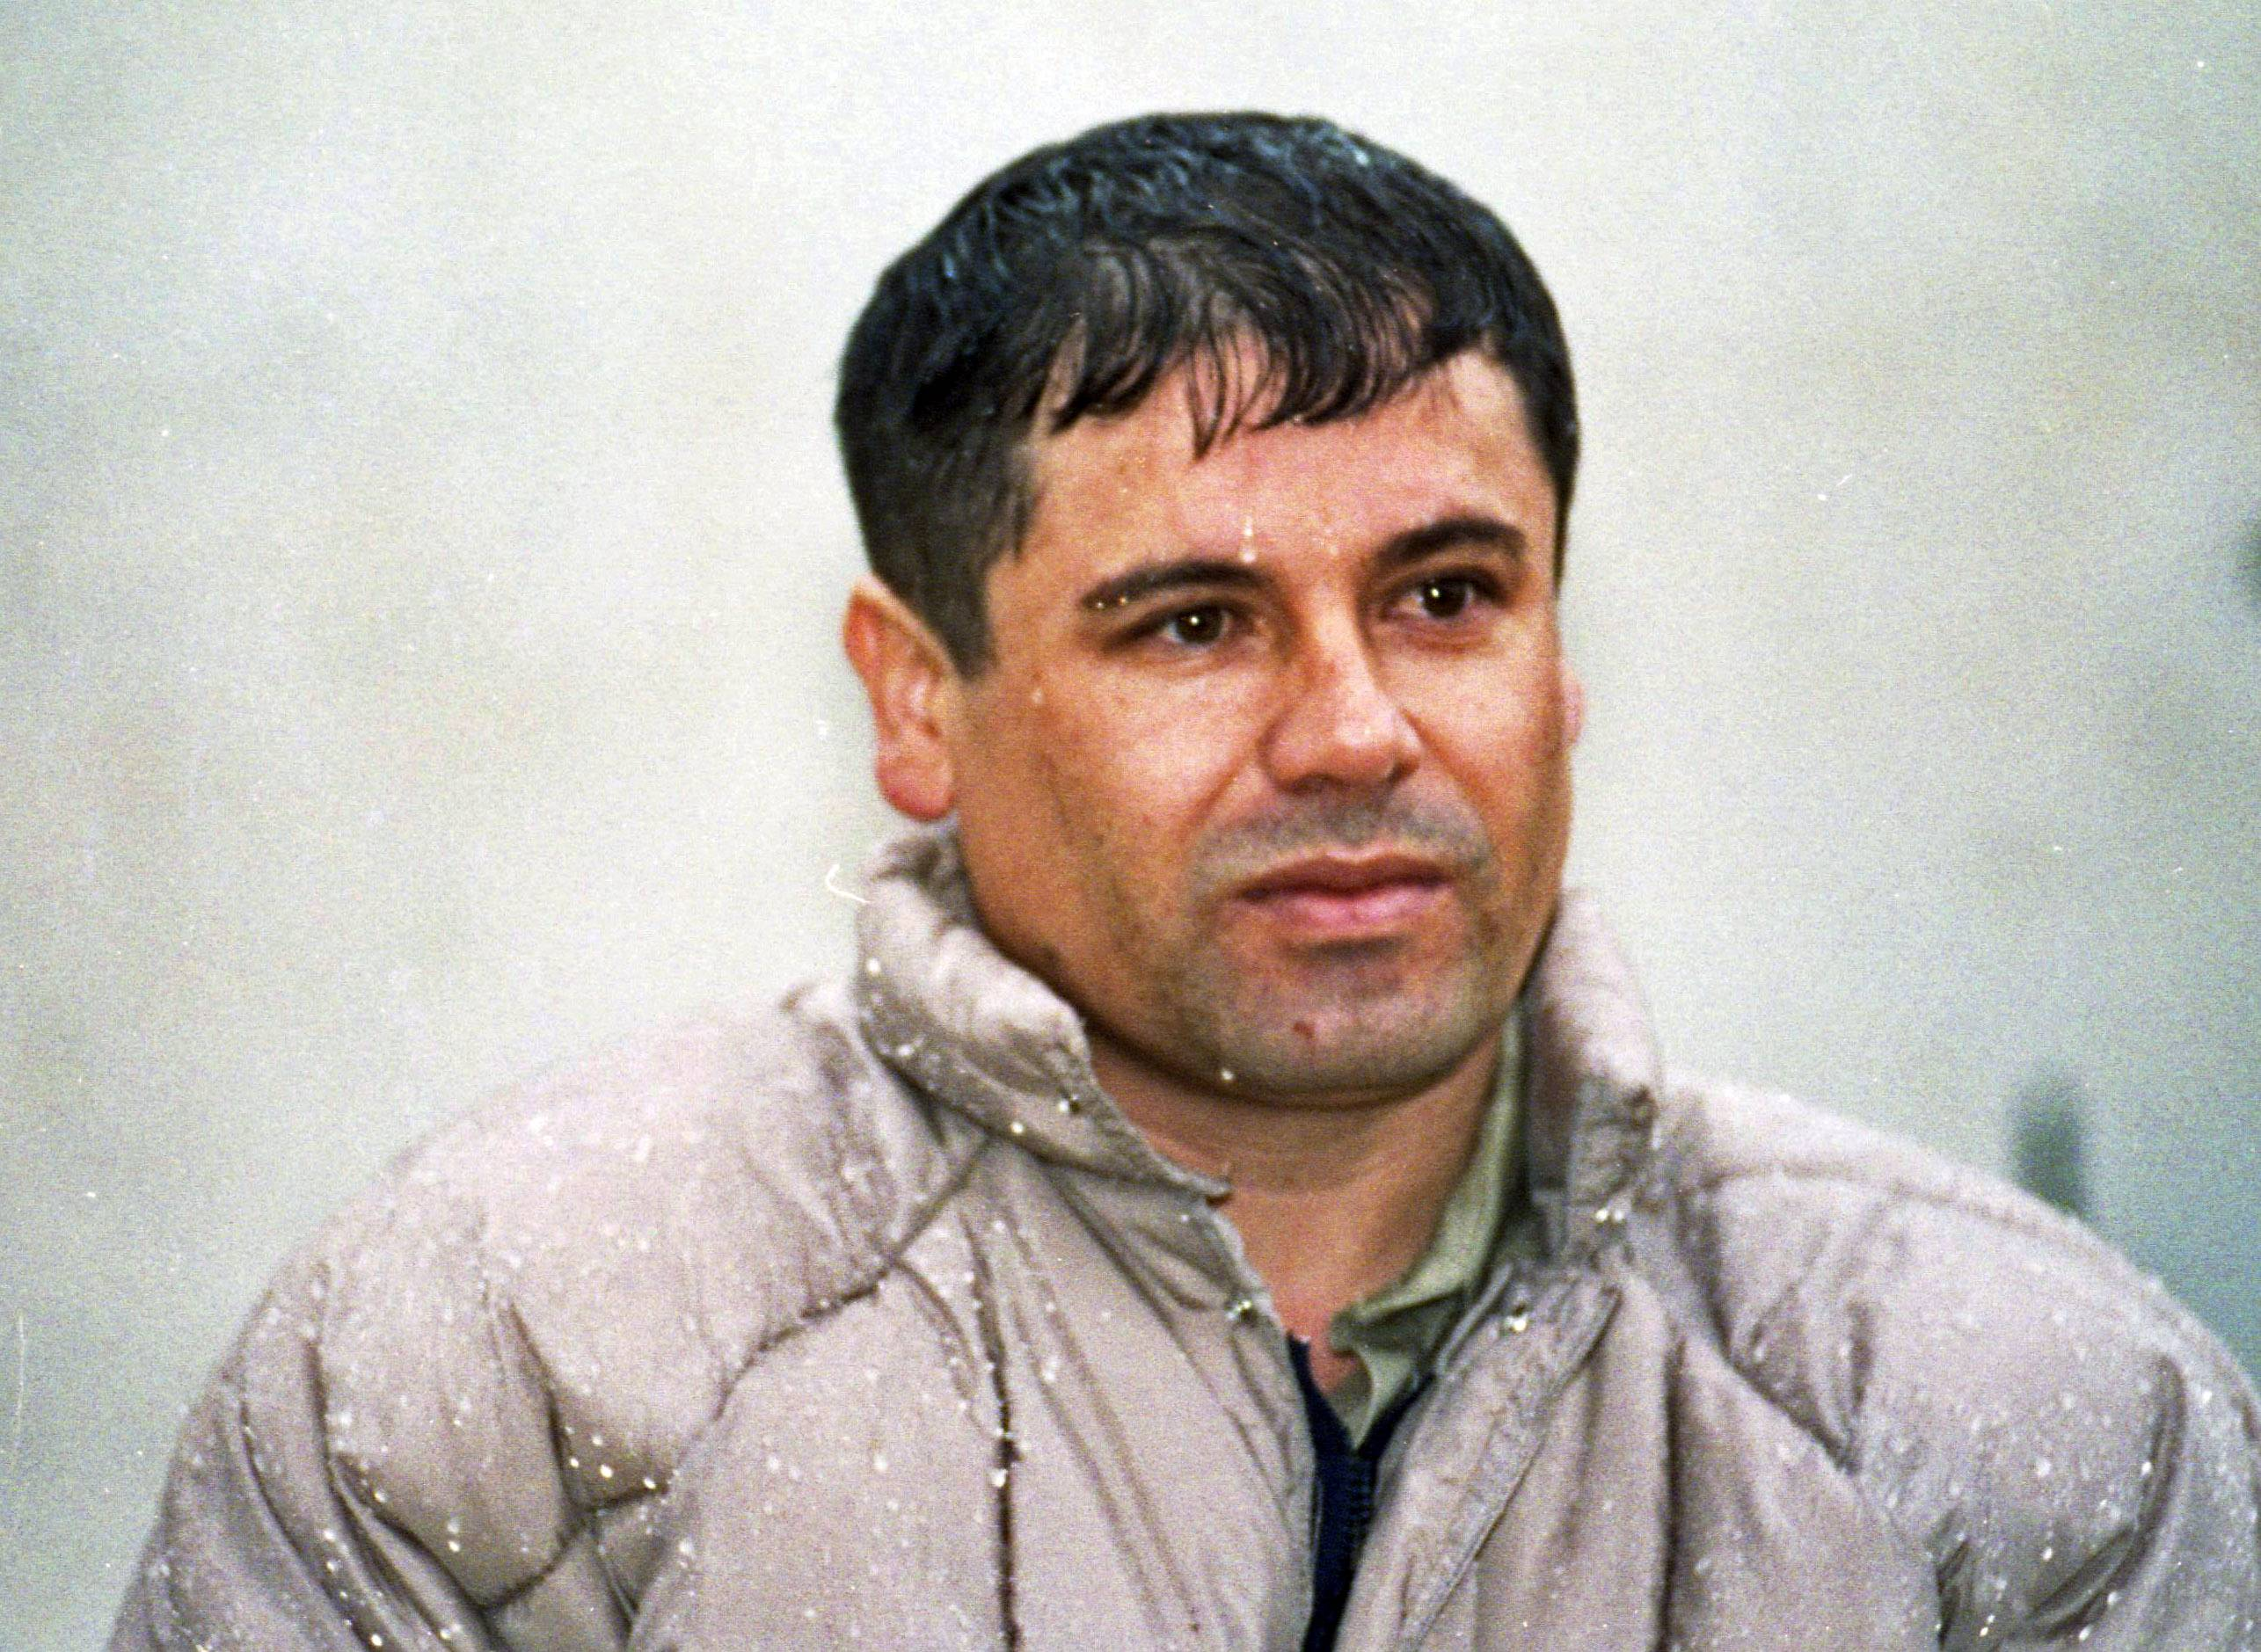 "In this June 10, 1993, file photo, Joaquin Guzman Loera, alias ""El Chapo"" Guzman, is shown to the media after his arrest at the high security prison of Almoloya de Juarez, on the outskirts of Mexico City. Guzman, the one they called ""shorty"" because of his 5'6"" frame, was a man who grew up poor and had no formal education, would rise from a small-time Mexican marijuana producer to lead the world's most powerful drug cartel."